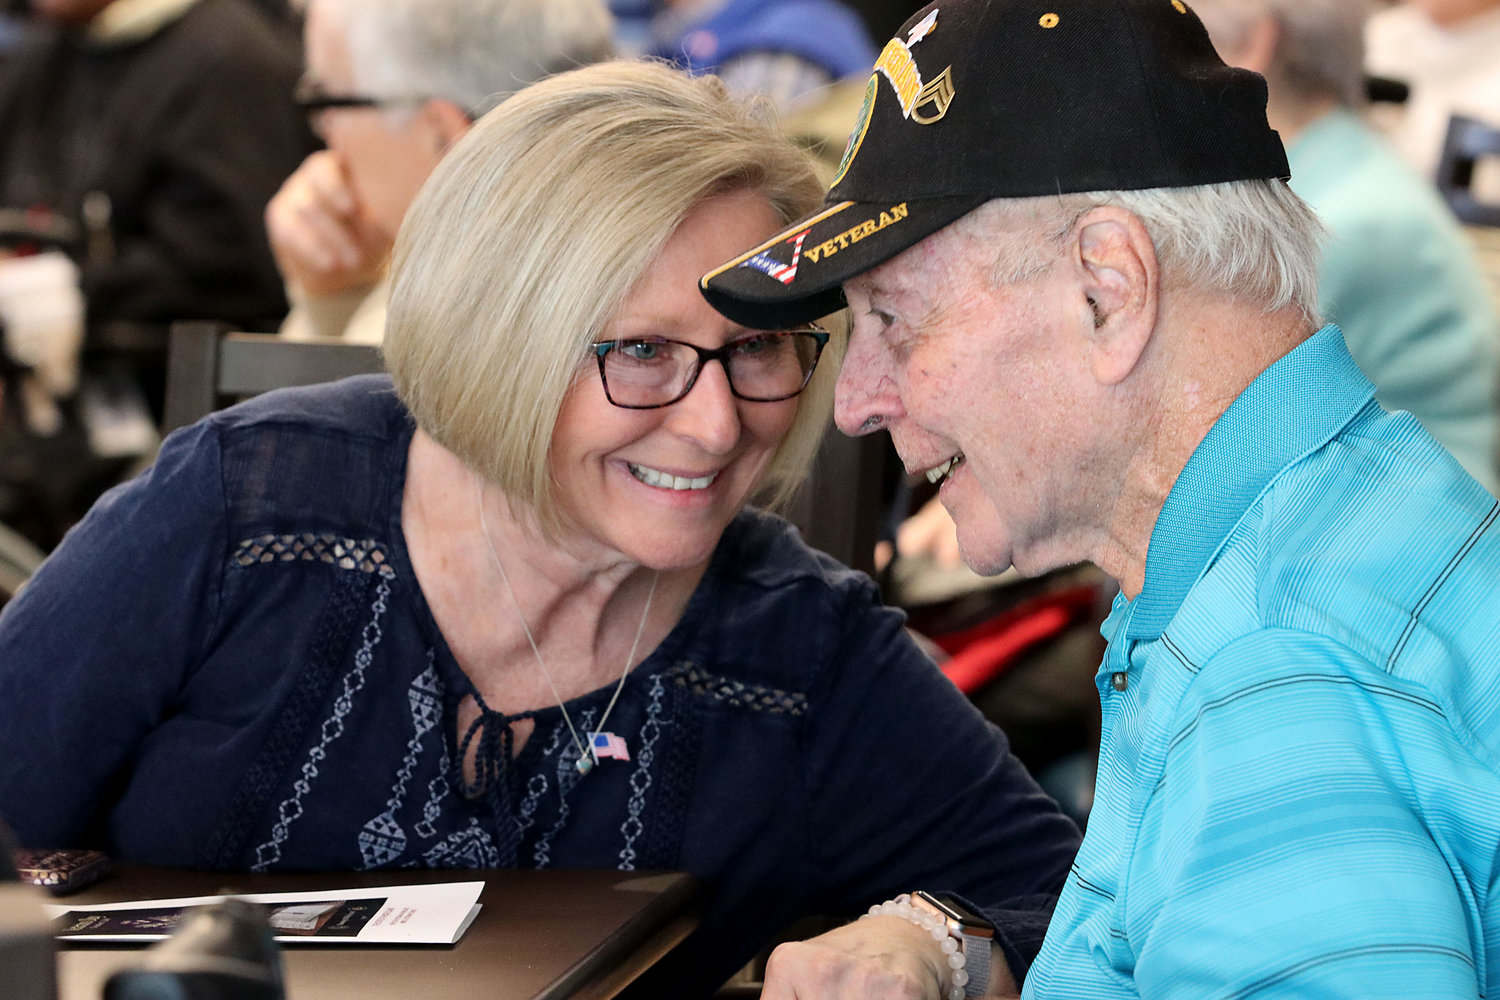 Diane Hamer shares a moment with her dad, Vietnam veteran Tom Roy during the annual Veteran's Day ceremony at the Rhode Island Veteran's Home in Bristol on Monday.